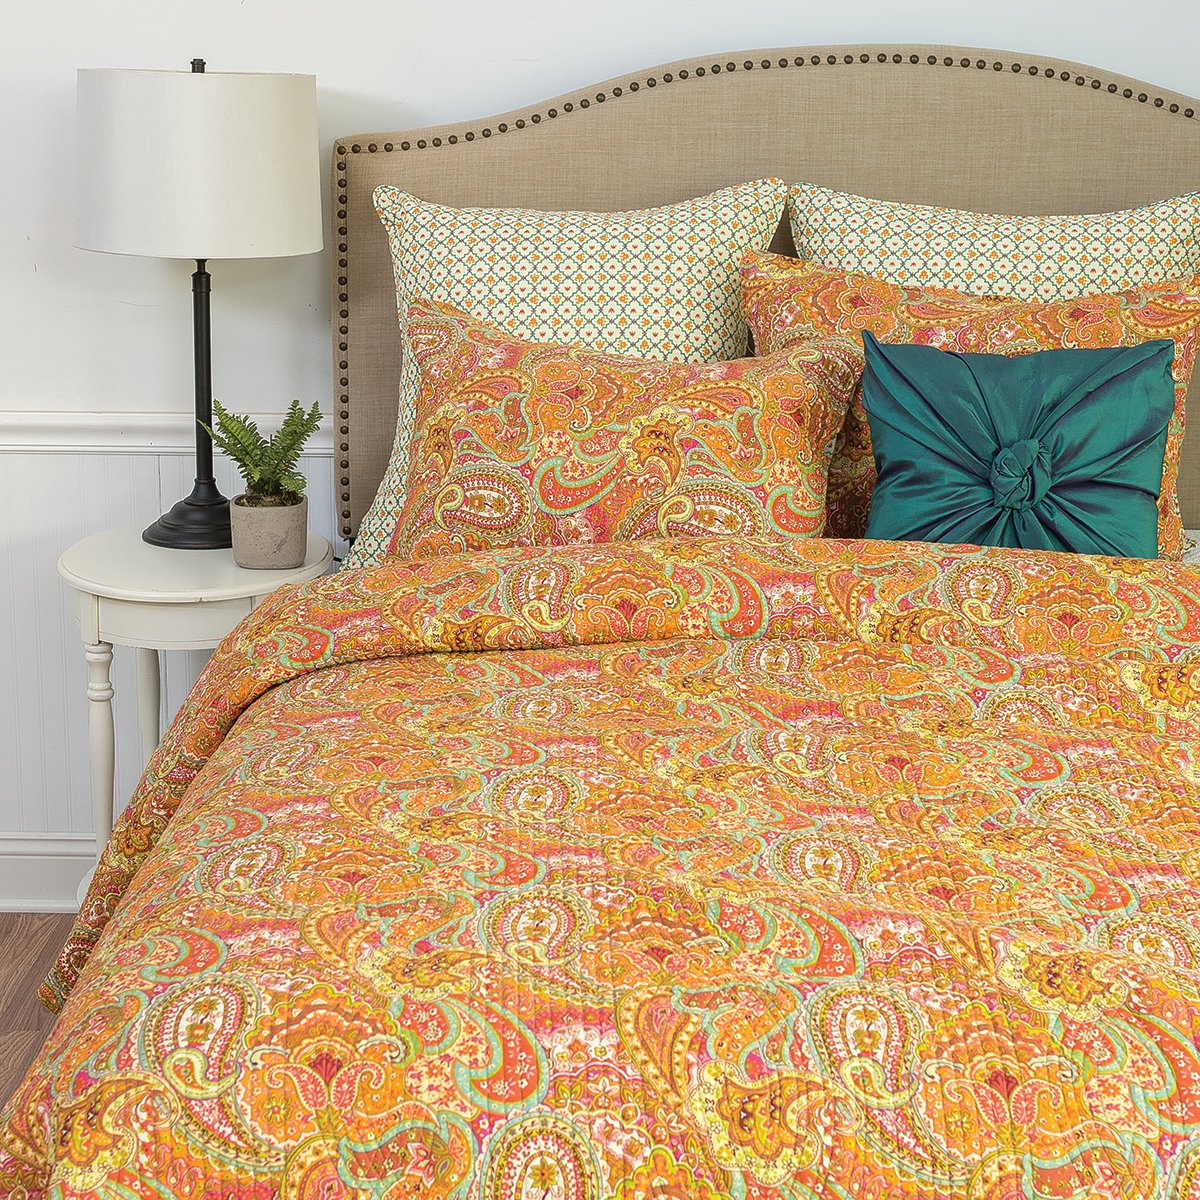 bedding is f including pin pillows items from pattern cora tropical quilt a c quilts ect